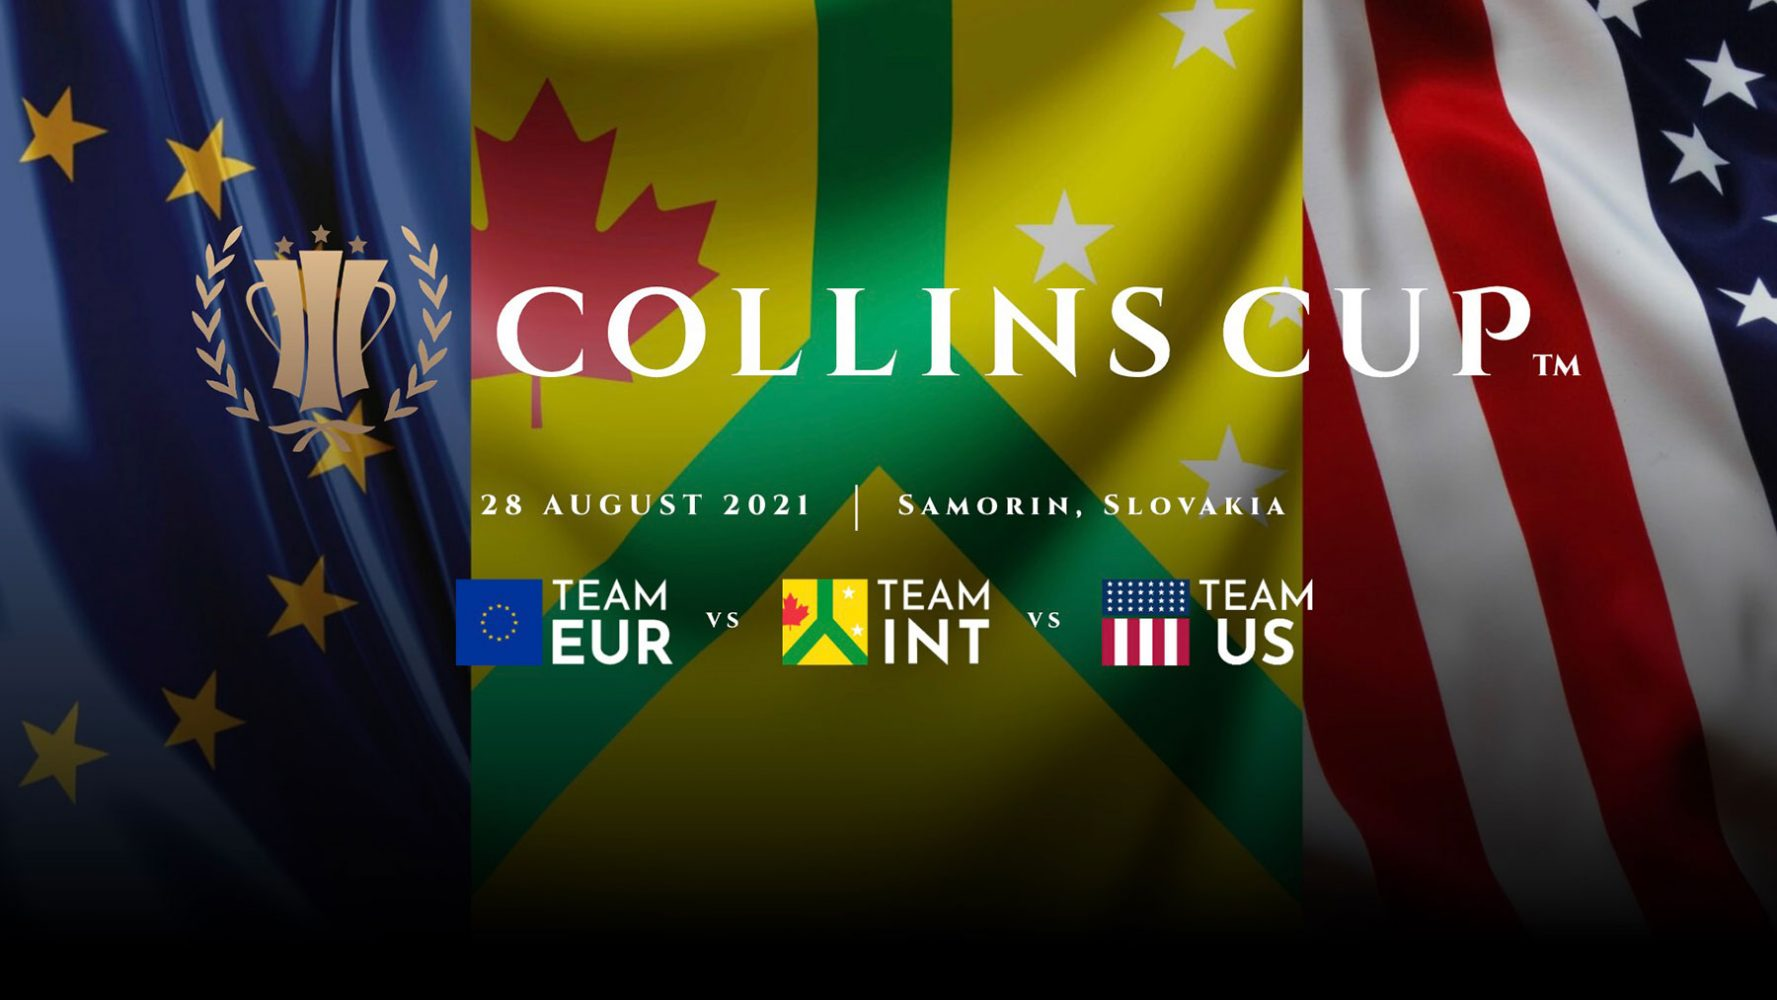 Collins Cup 2021